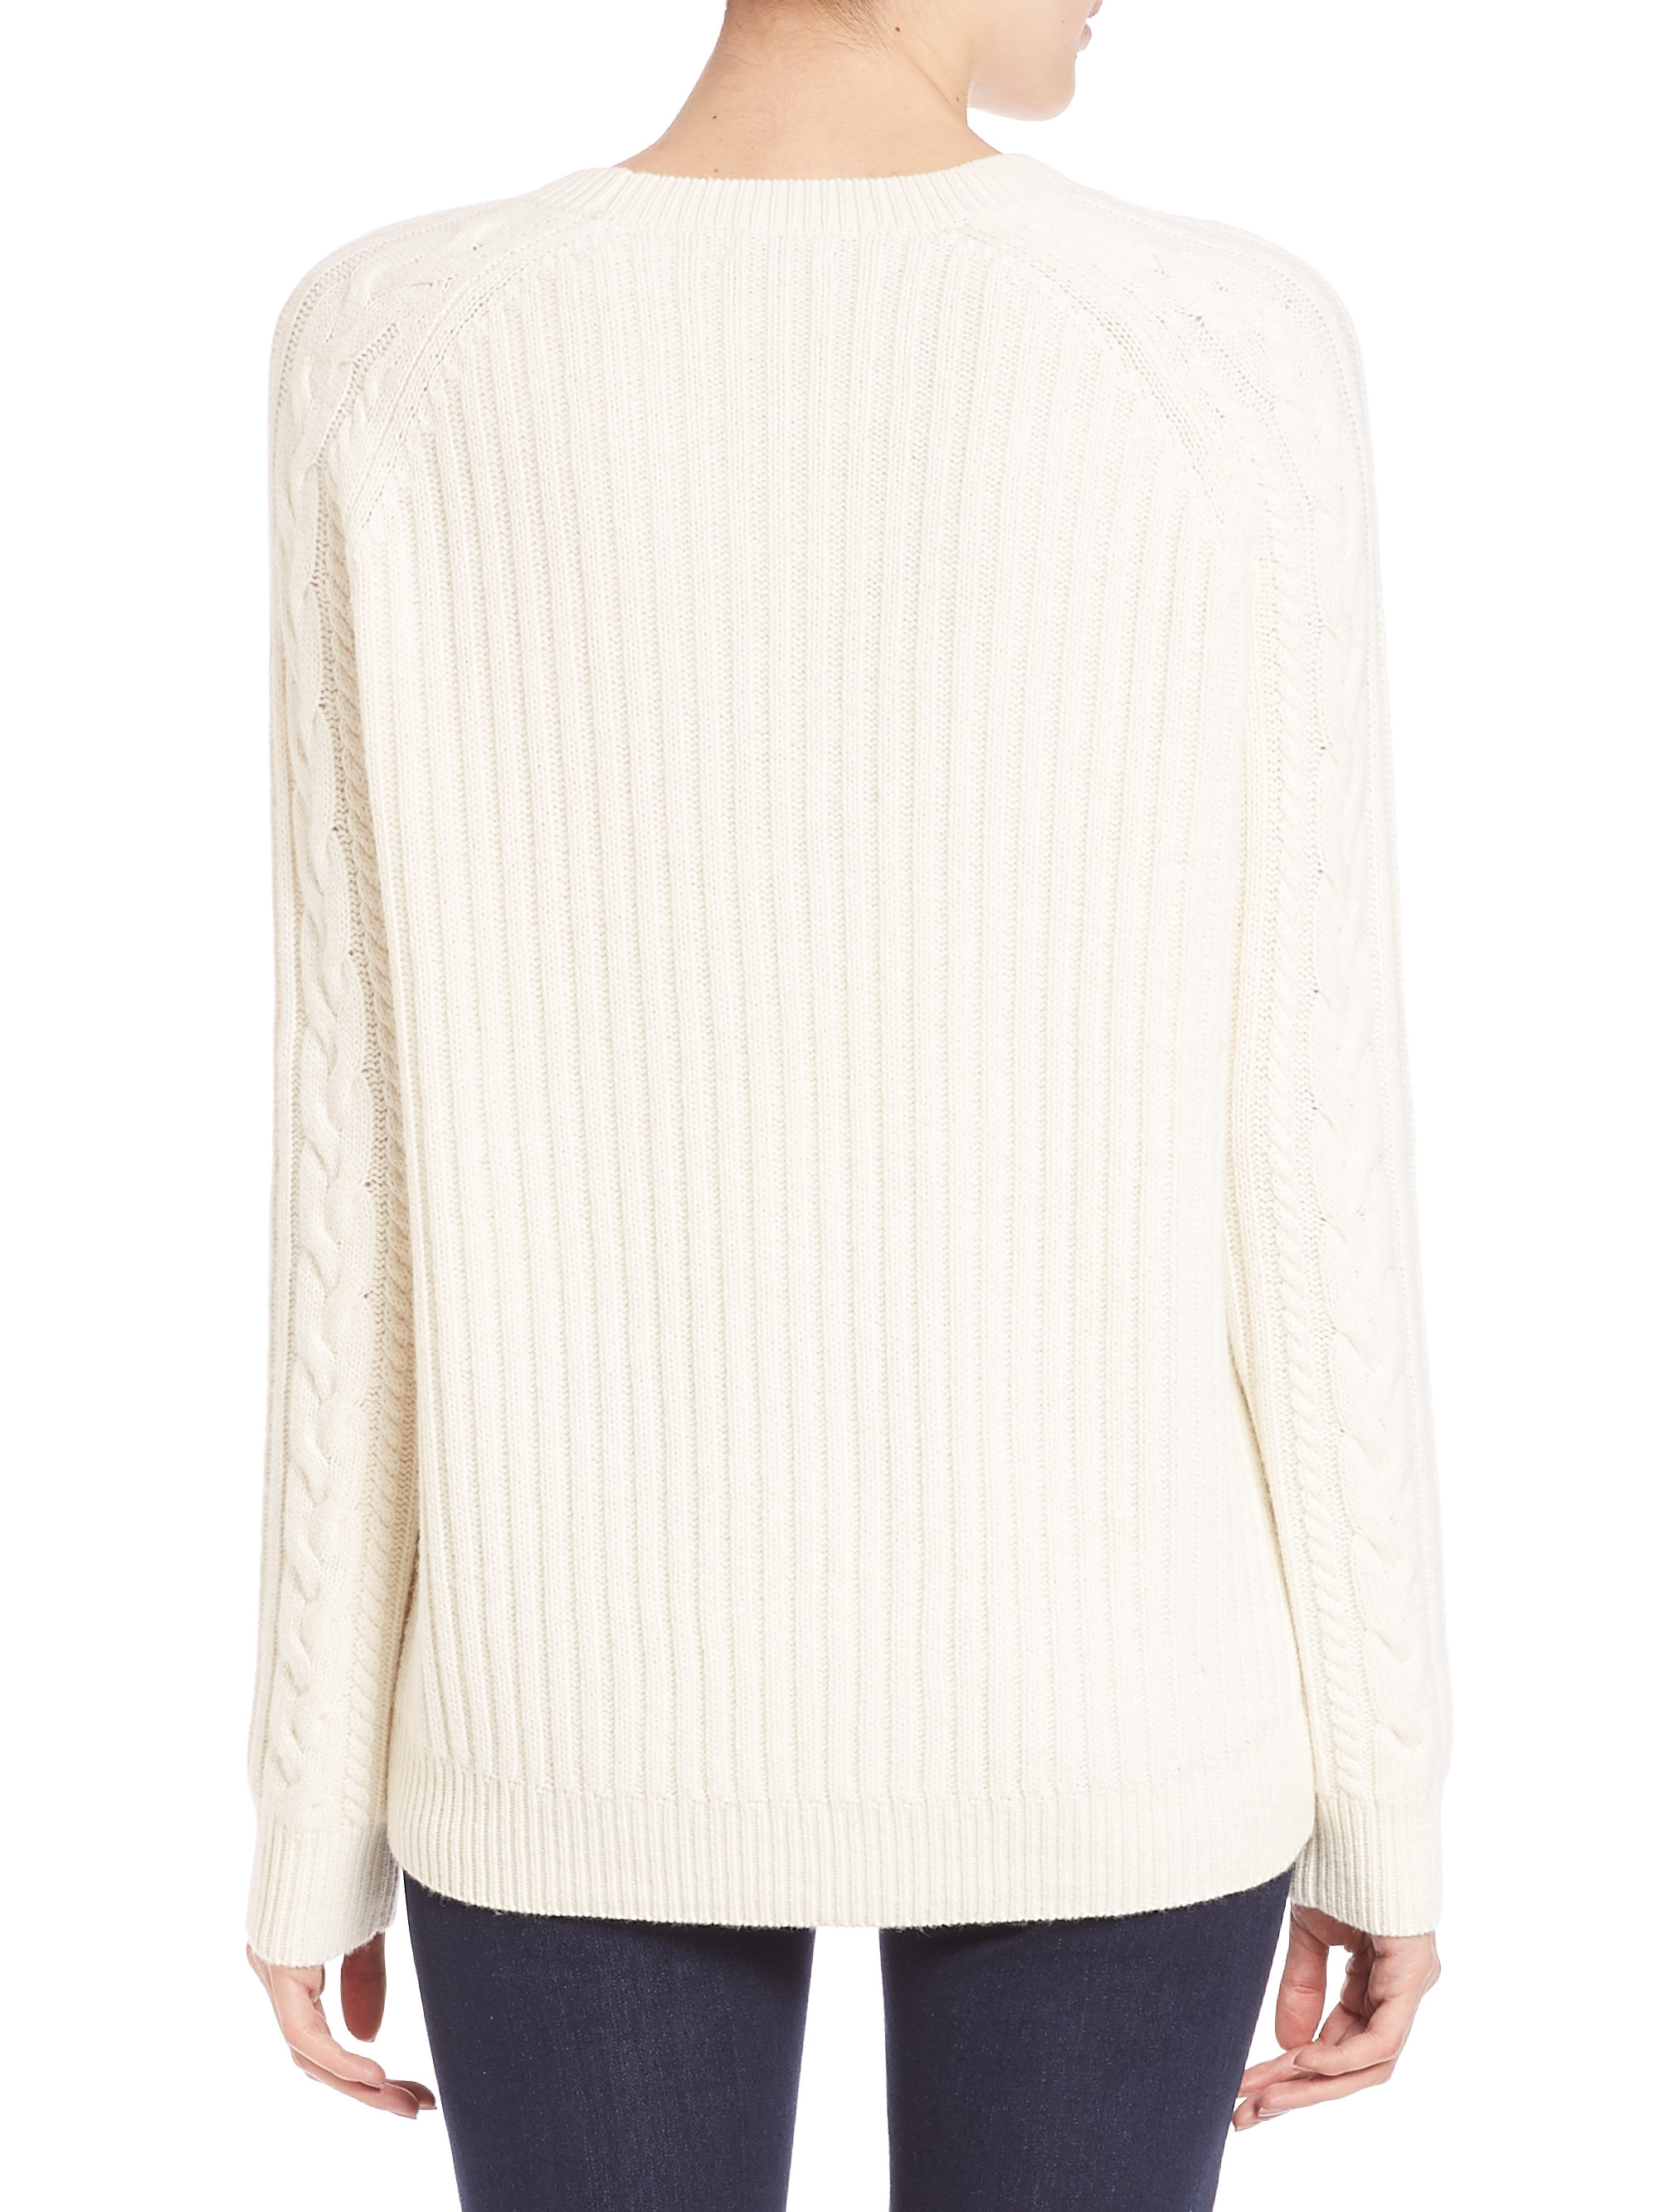 off white cable knit sweater her sweater. Black Bedroom Furniture Sets. Home Design Ideas